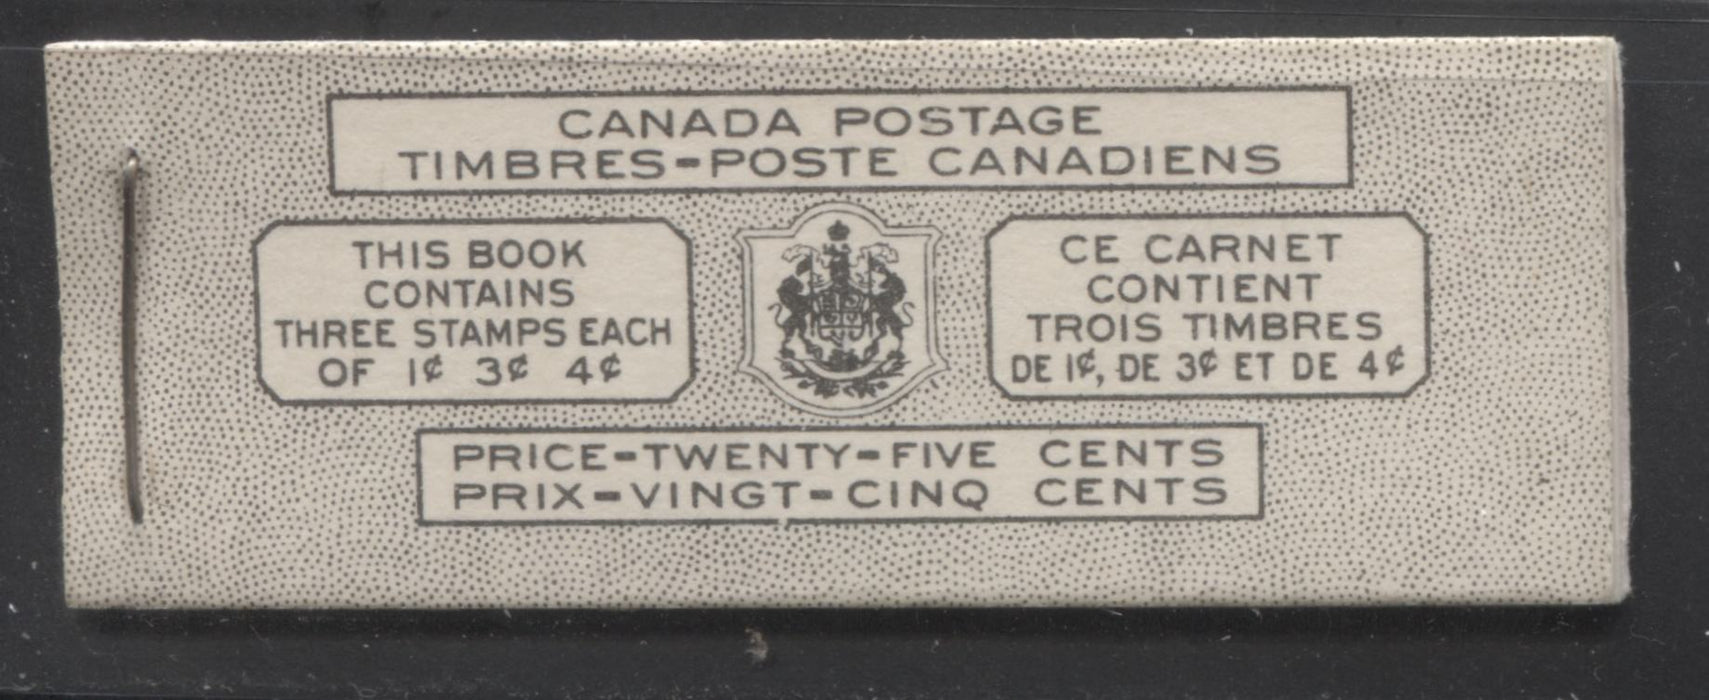 Canada #BK43a 1949-1953 Postes-Postage Issue Complete 25c Bilingual, Booklet Containing 1 Pane of 3 of Each of the 1c Green, 3c Rose Purple and 4c Carmine King George VI, Harris Front Cover Type VIj, Back Cover Kaii, 5c & 7c Rate Page Brixton Chrome